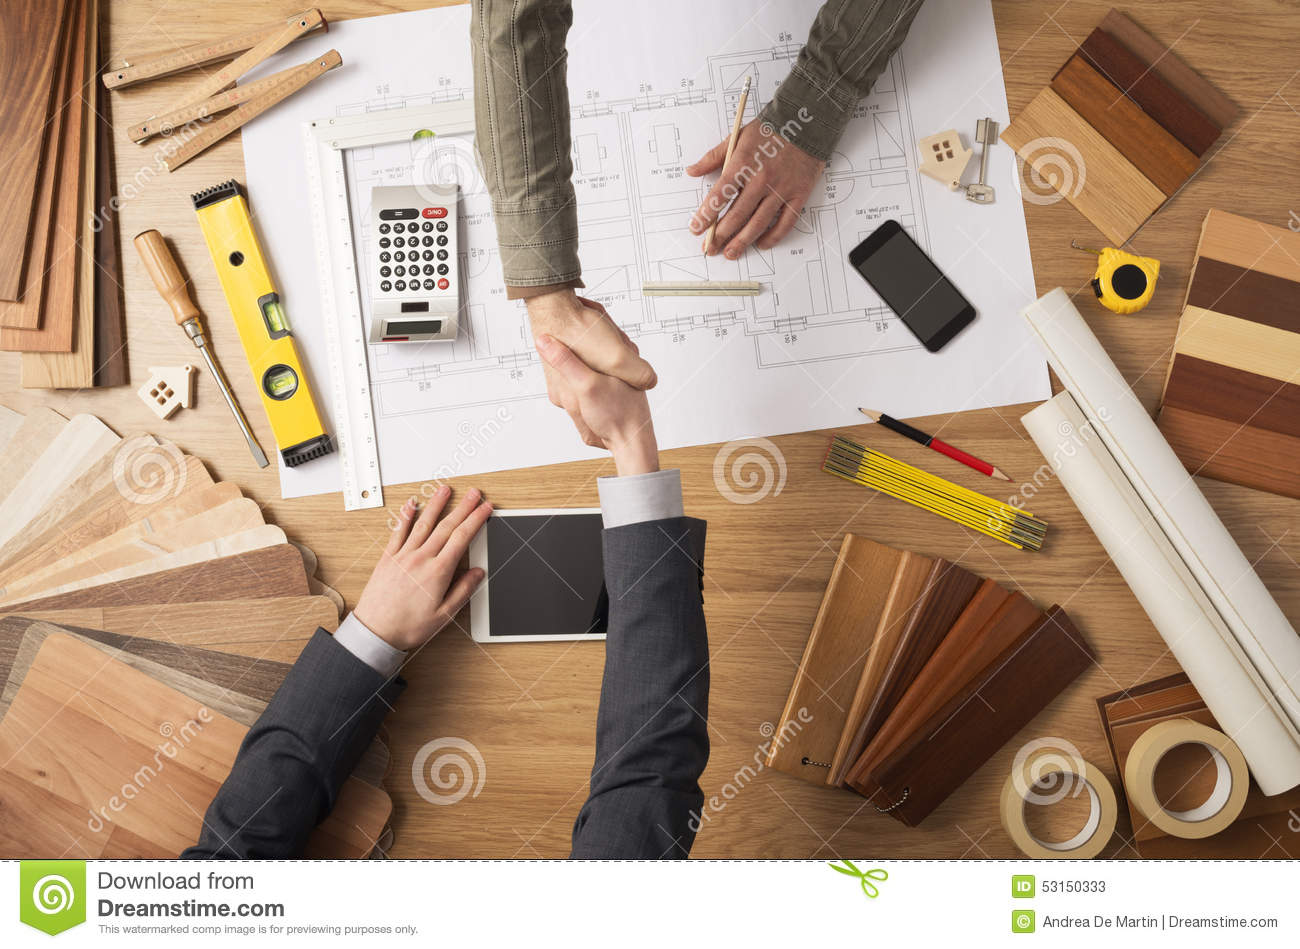 Download Handshake stock image. Image of improvement, cooperation - 53150333